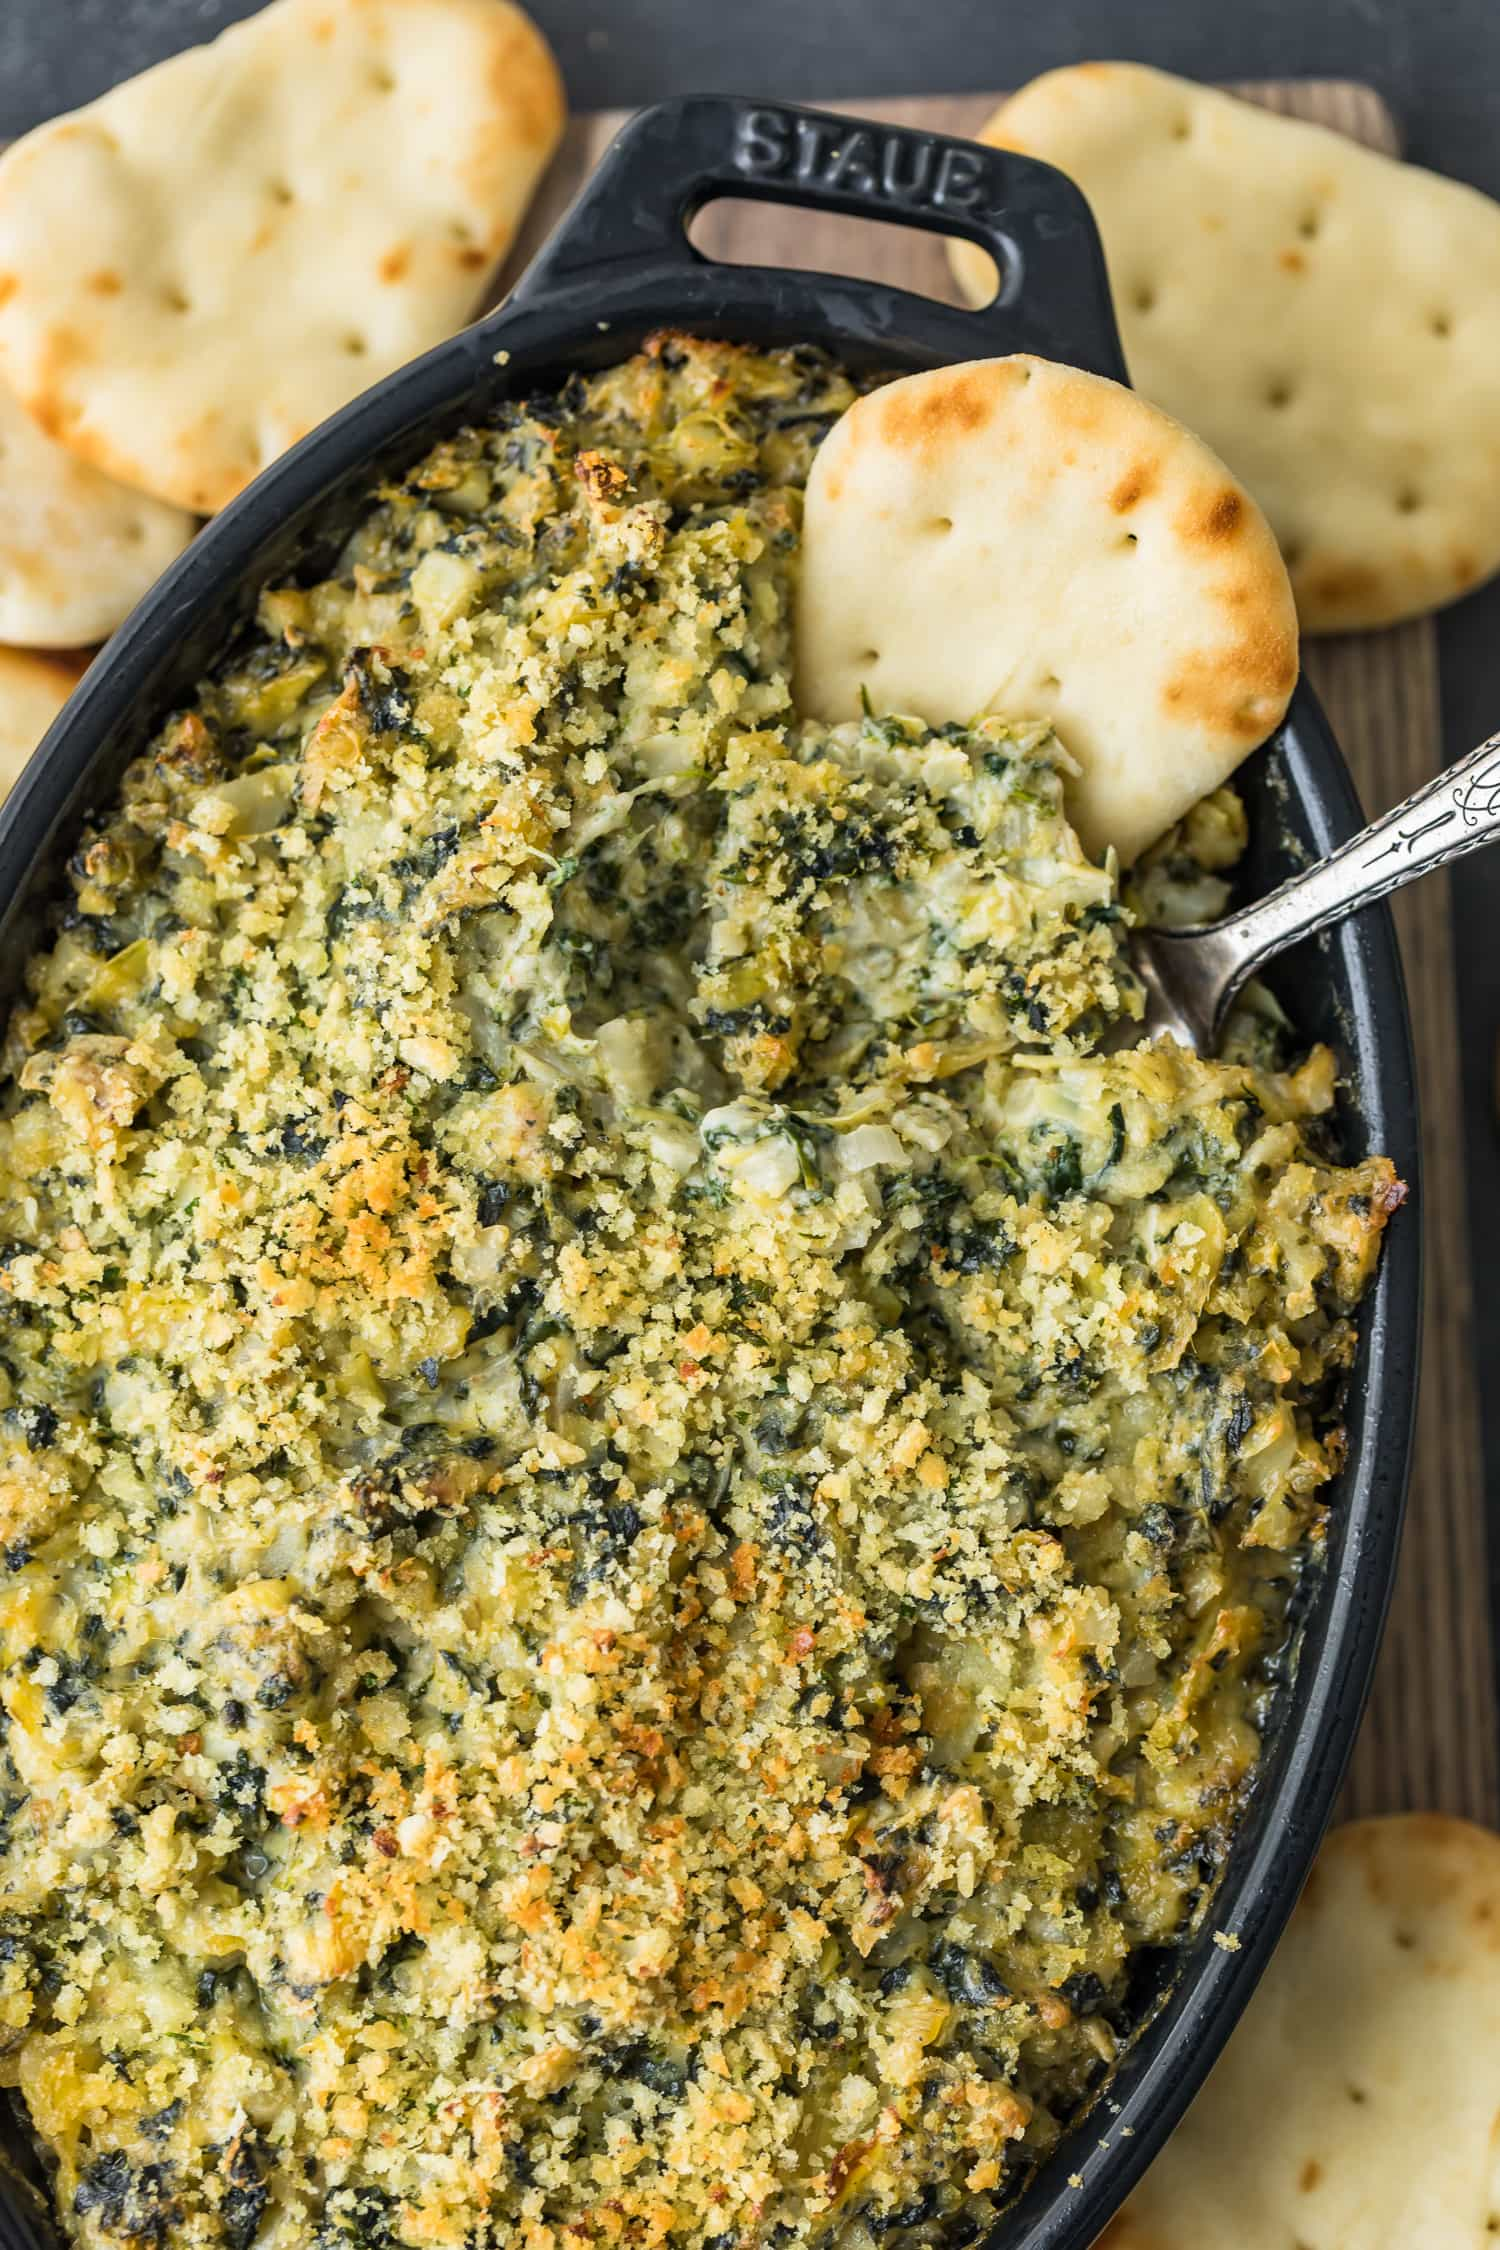 Baked Spinach Artichoke Dip served in a black dish